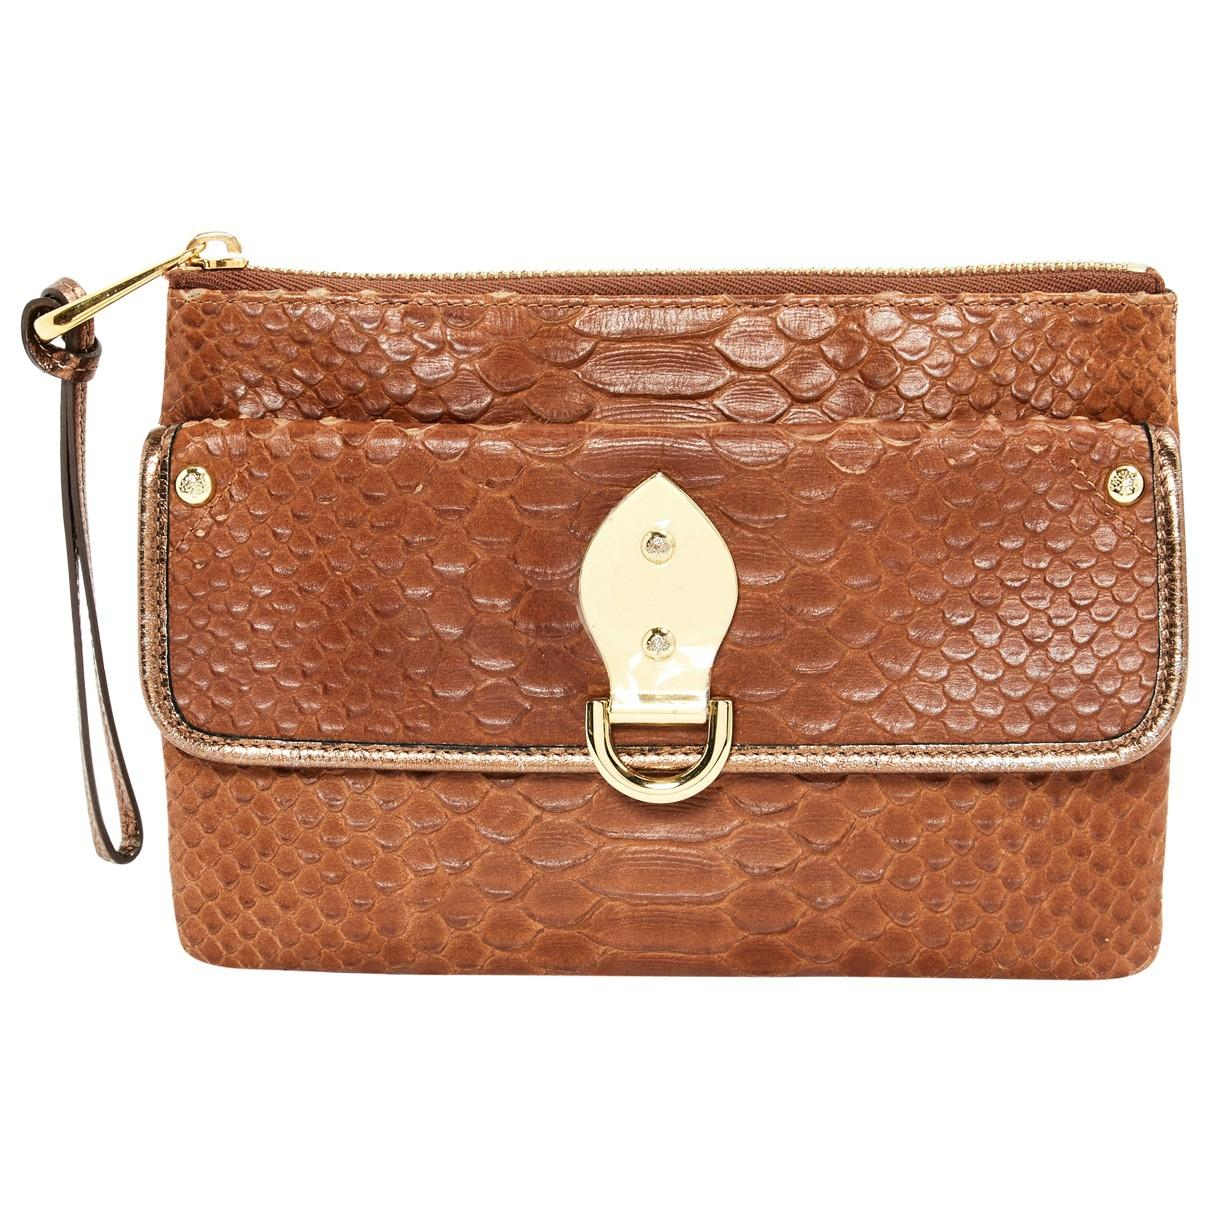 f3438fe6ed581d Mulberry. Women's Brown Python Clutch Bag. £304 £274 From Vestiaire  Collective